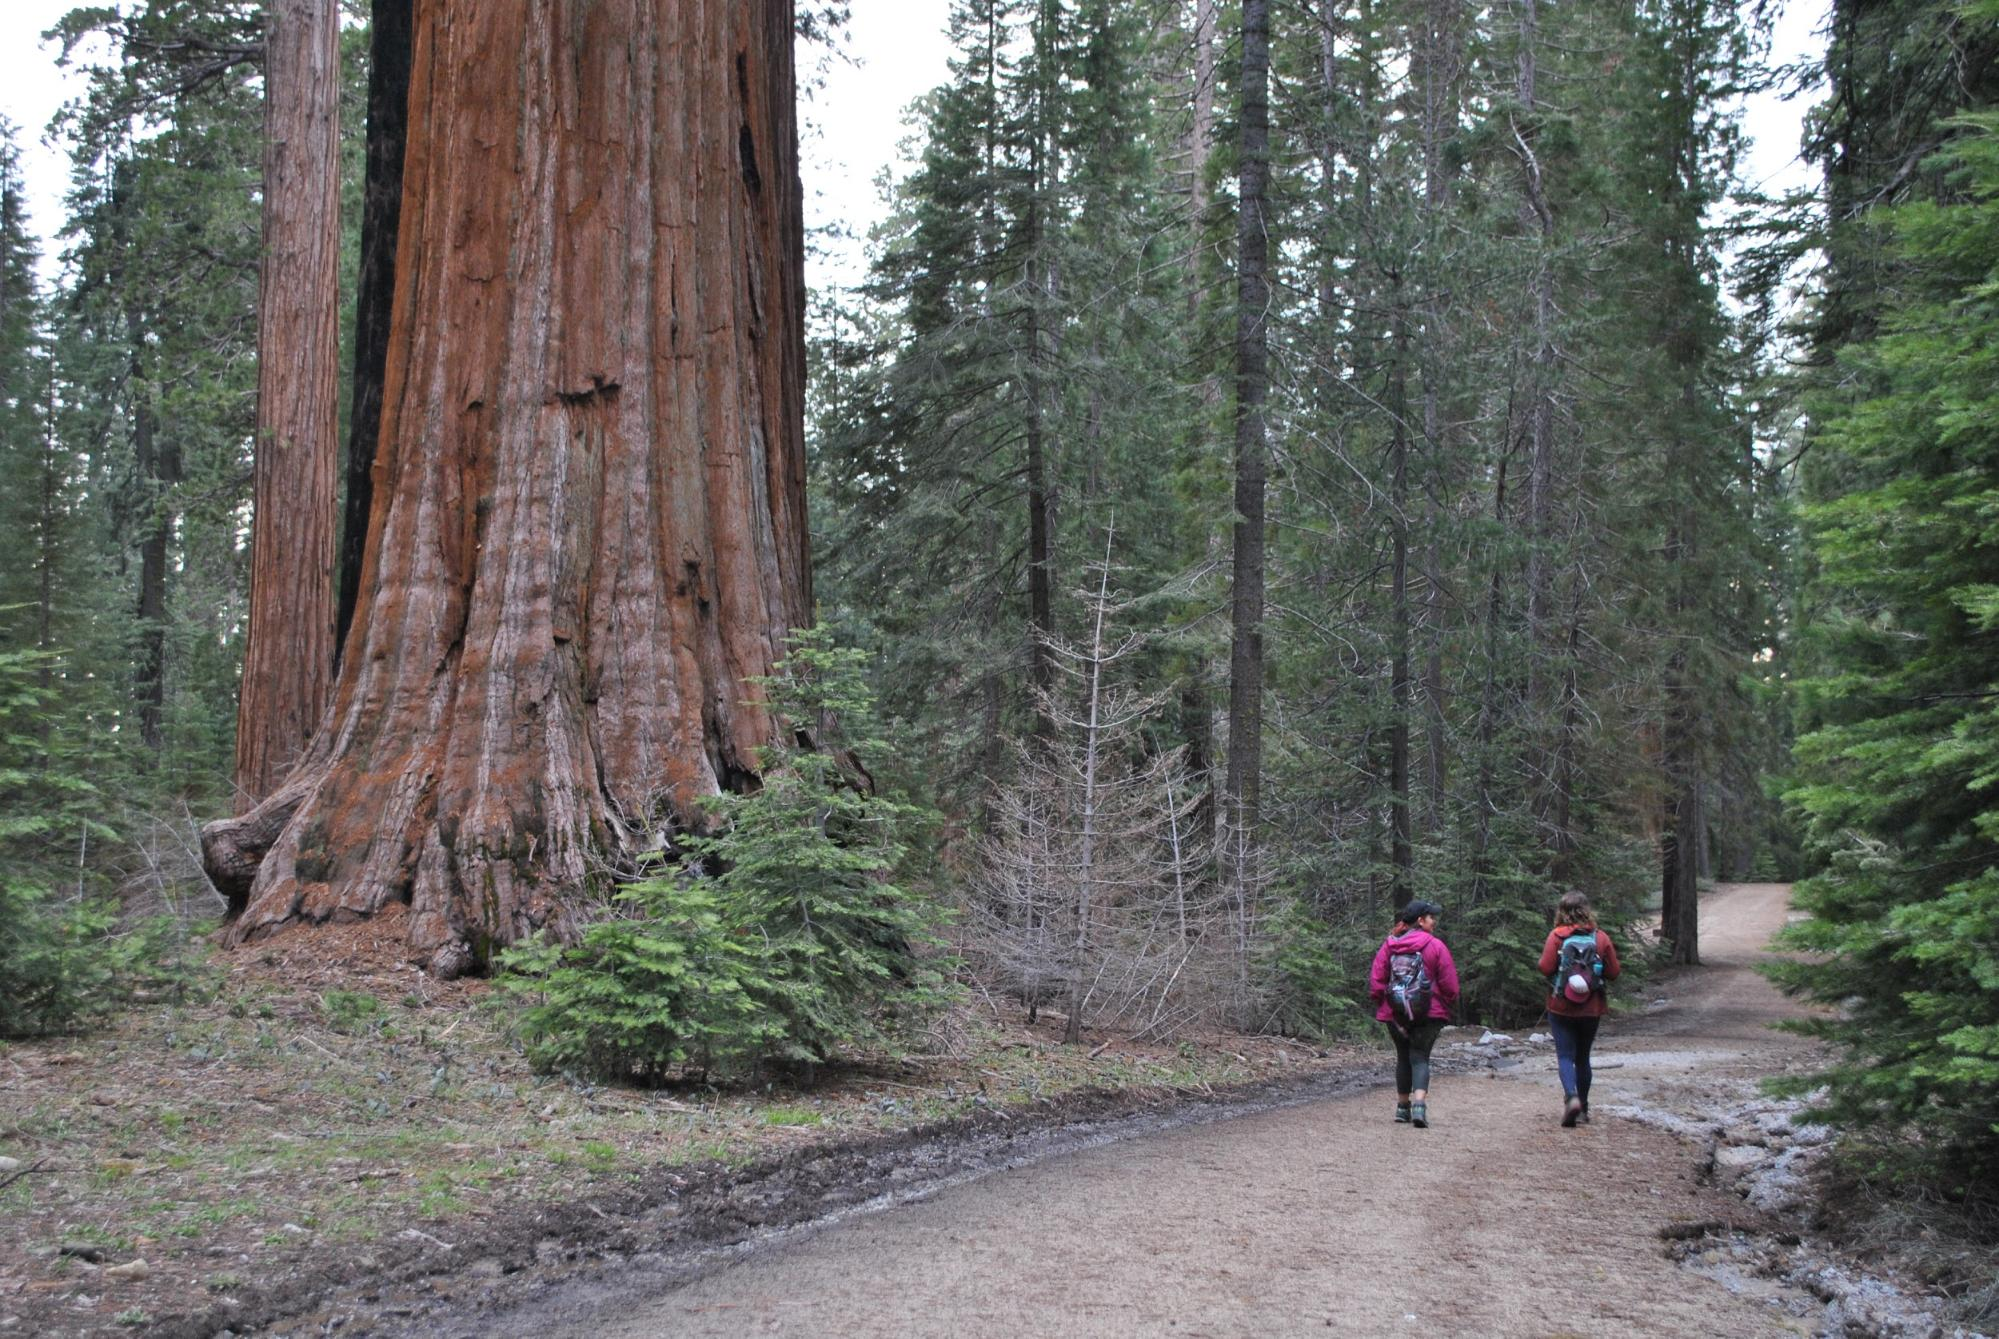 Hikers walk past majestic giant Sequoias